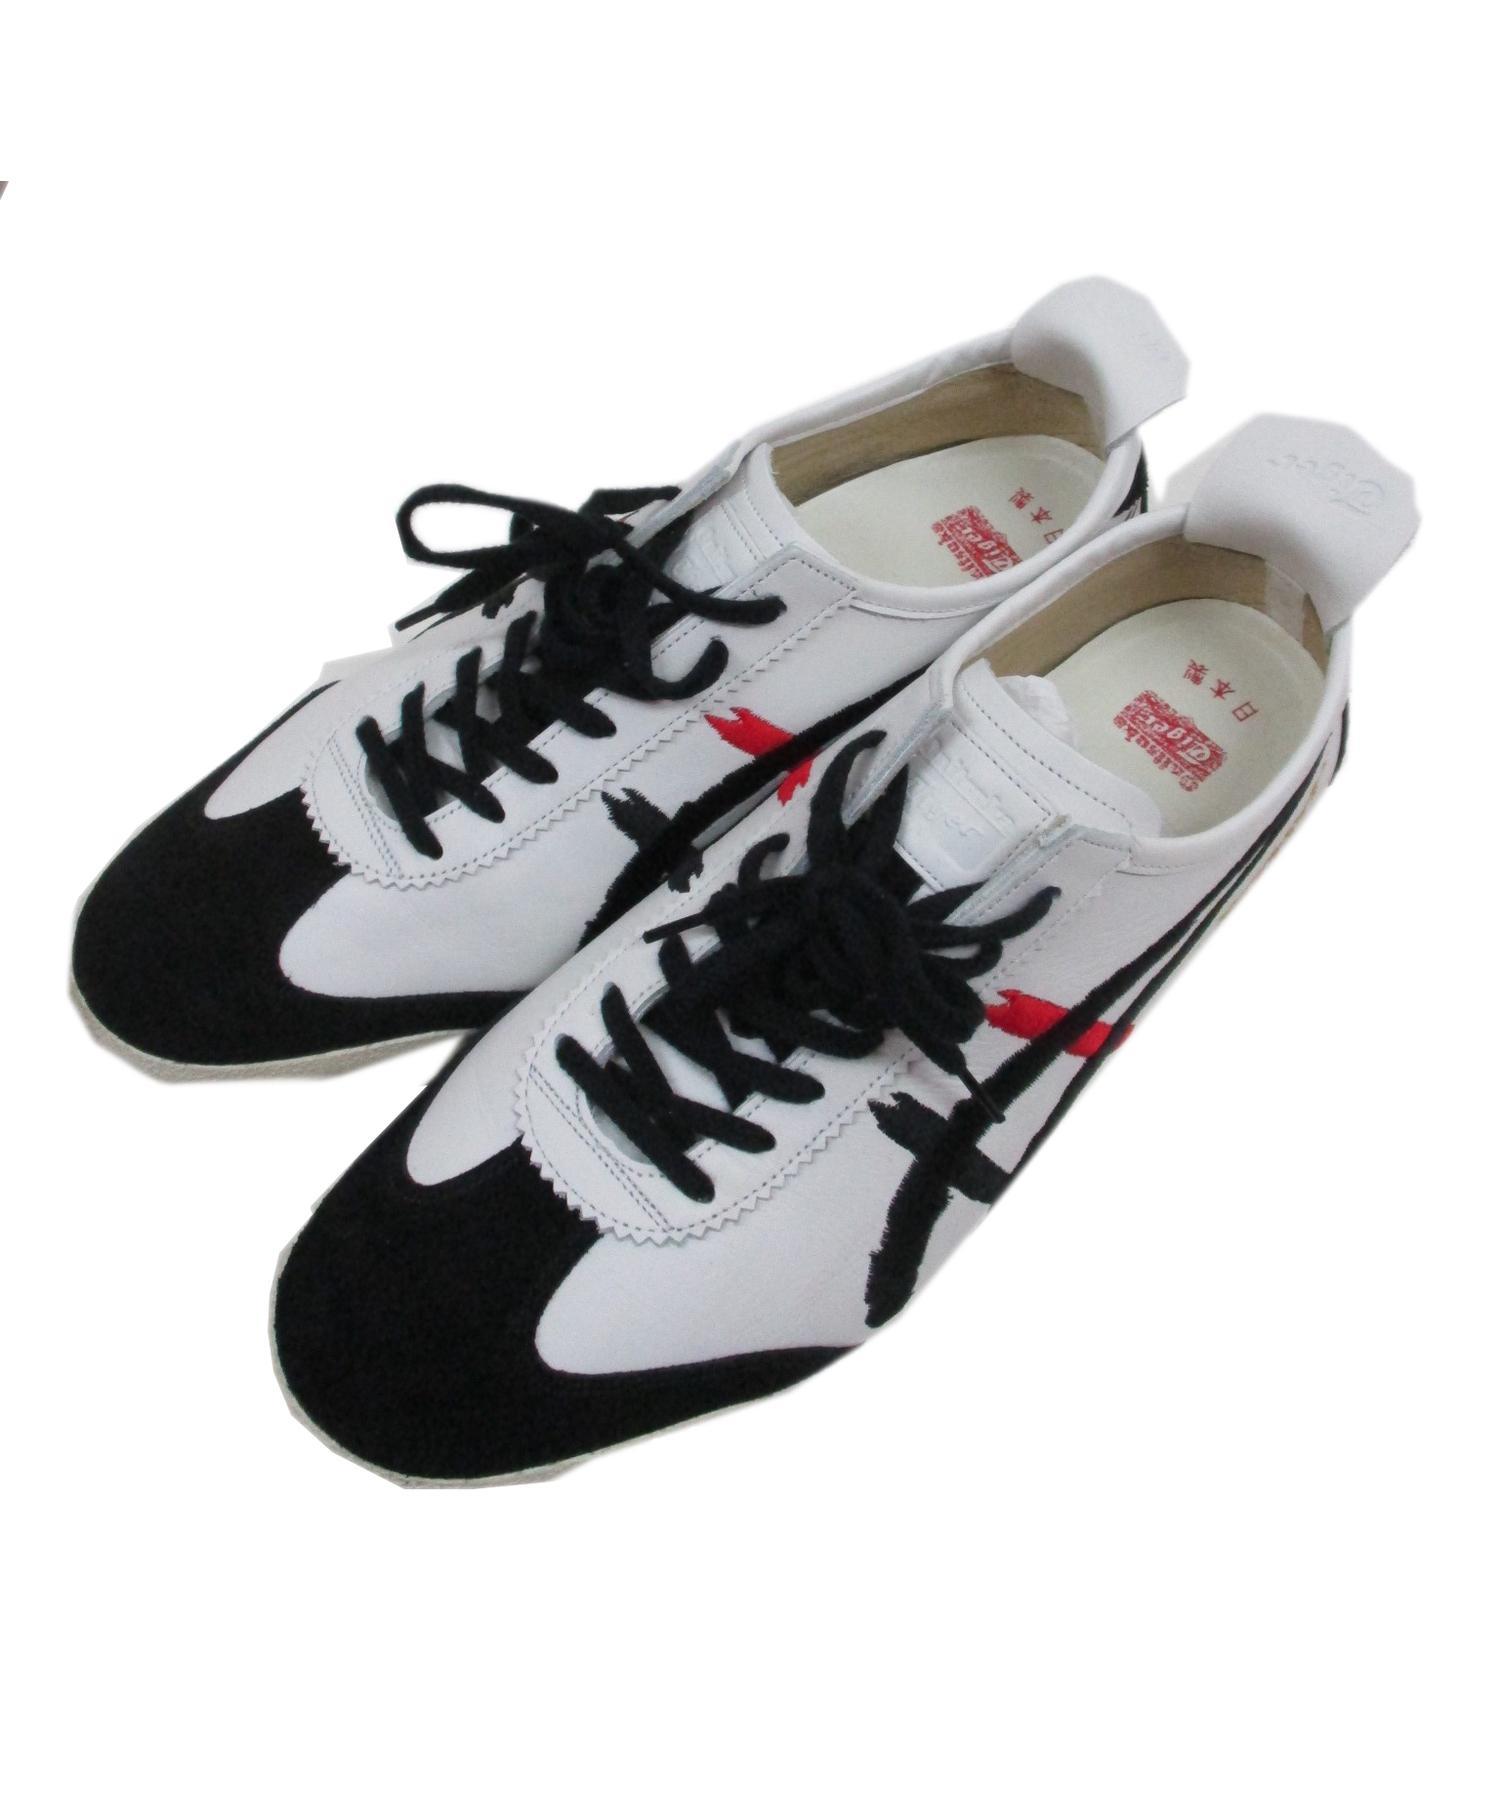 cheap for discount a10cf 40a8c [中古]Onitsuka Tiger(オニツカタイガー)のメンズ シューズ MEXICO 66 DELUXE